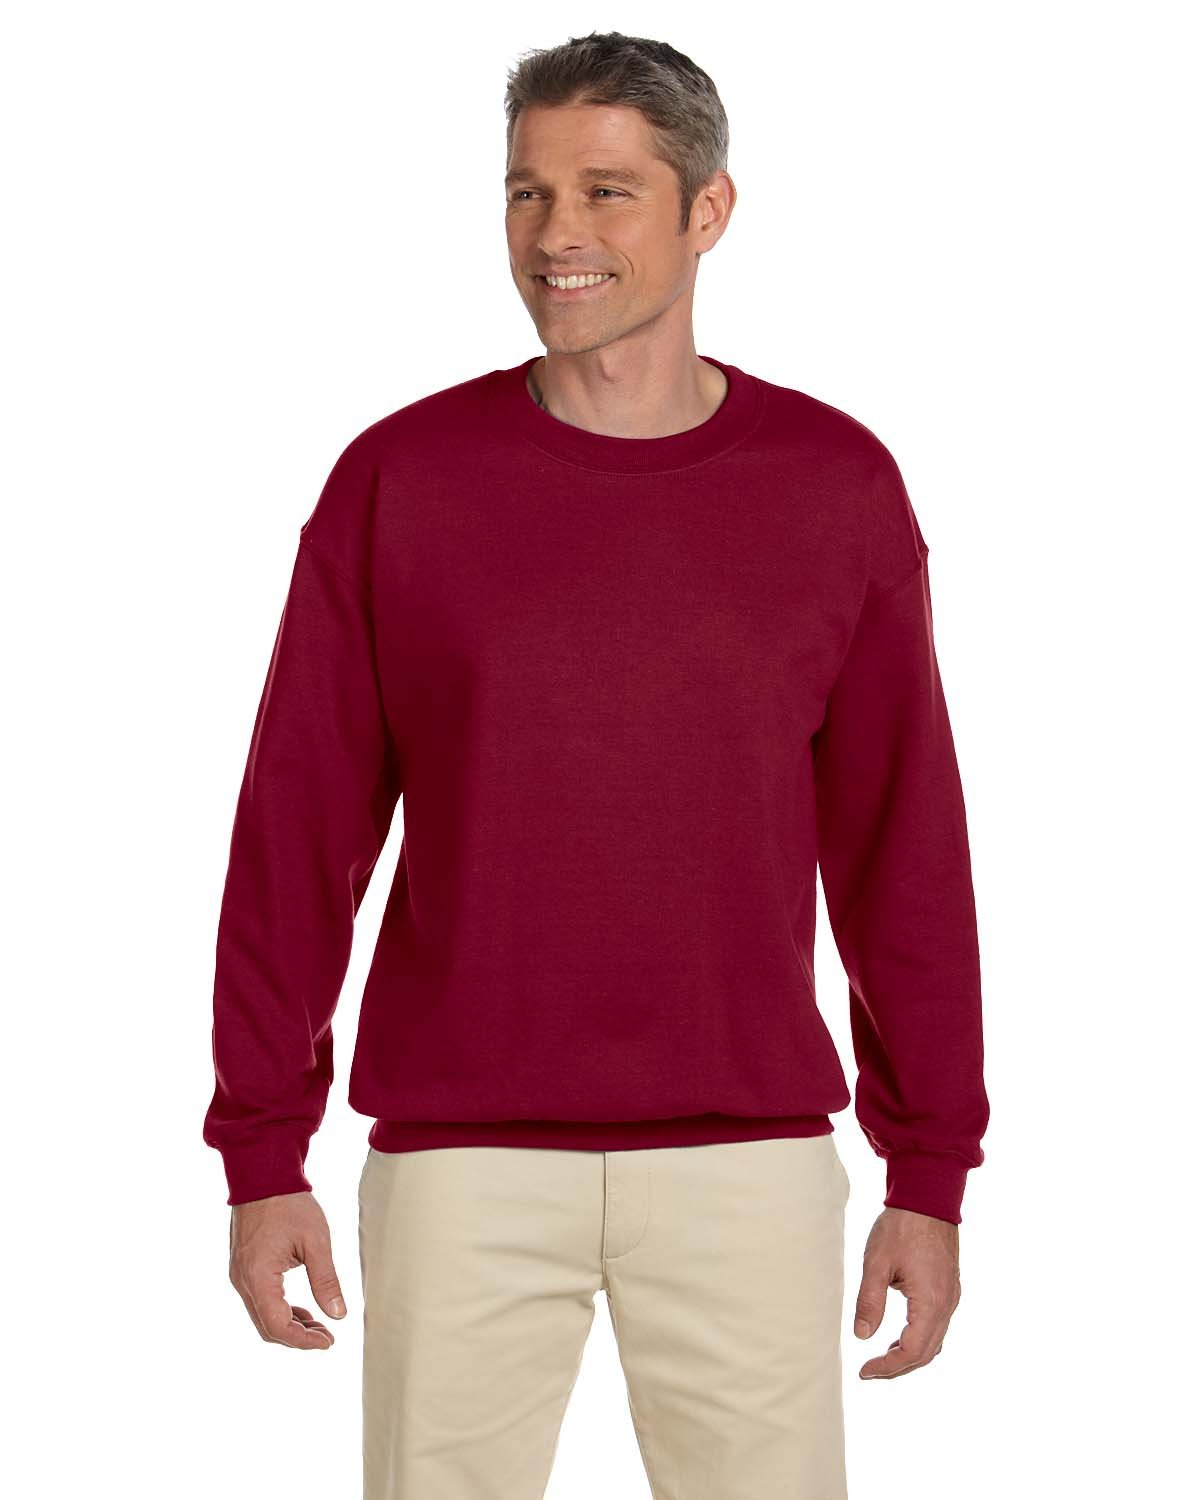 Gildan Men's 8 oz Heavy Blend 50/50 Fleece Crew M11167